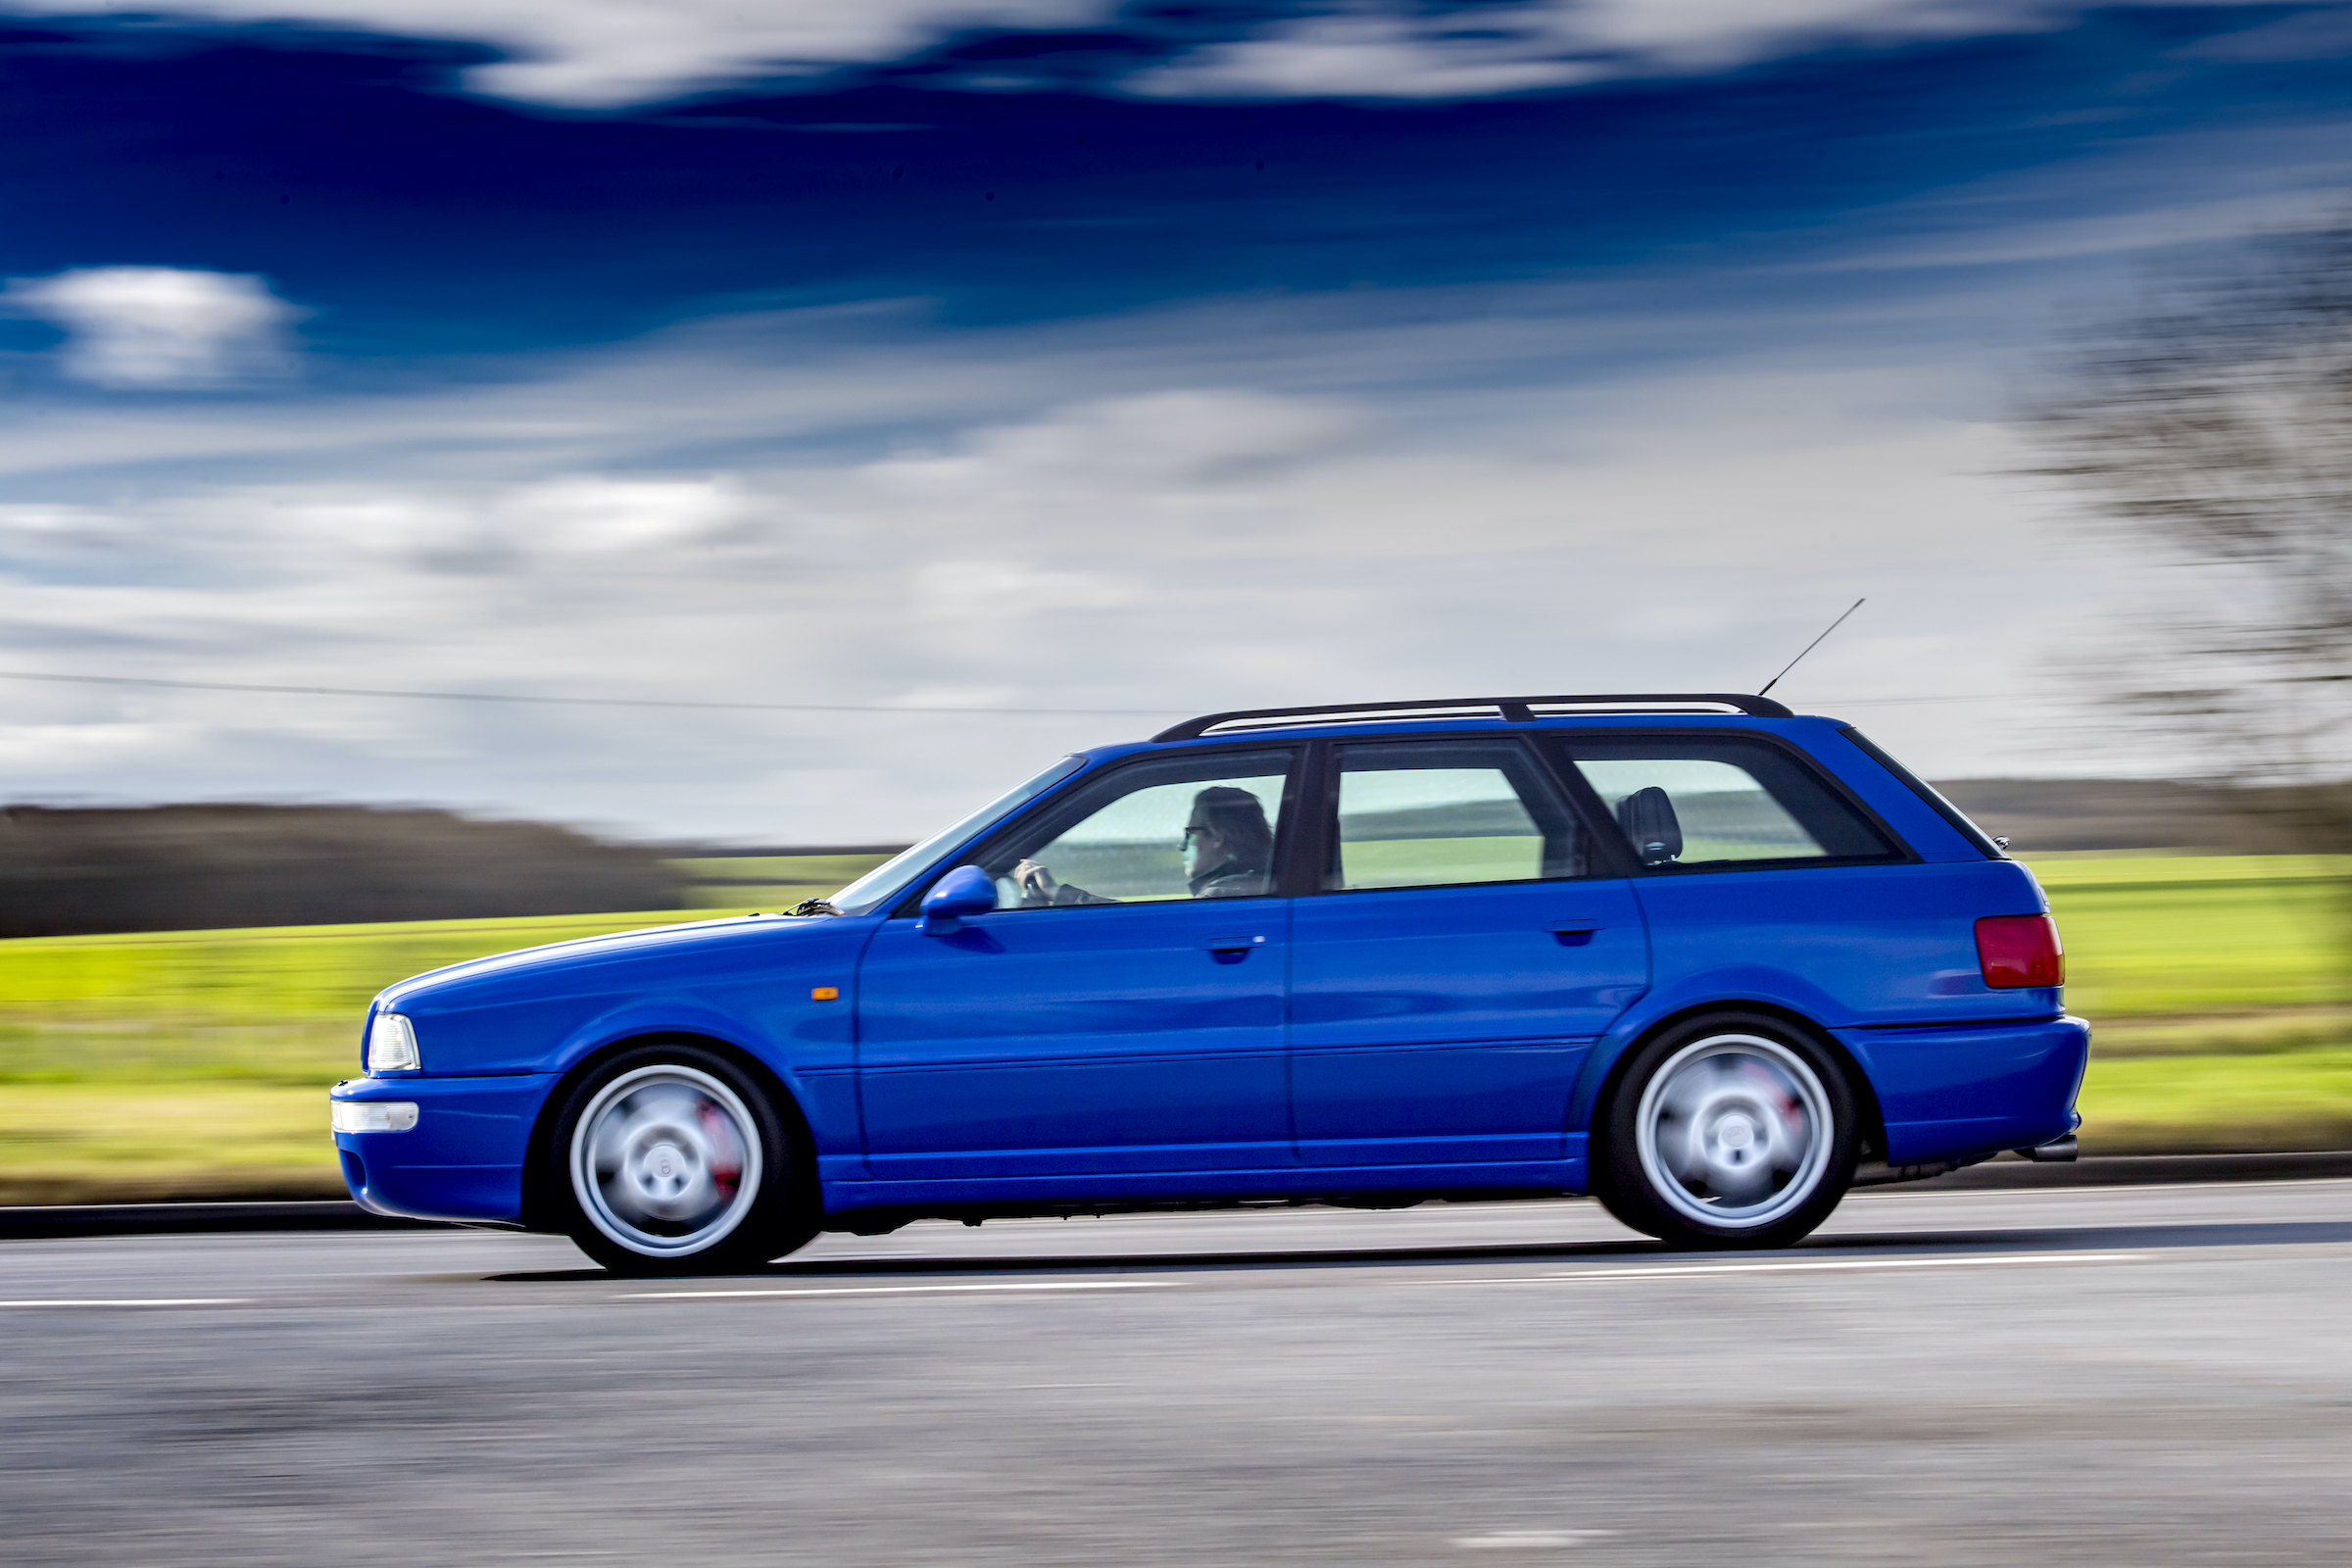 Audi RS2 side profile driving dynamic action